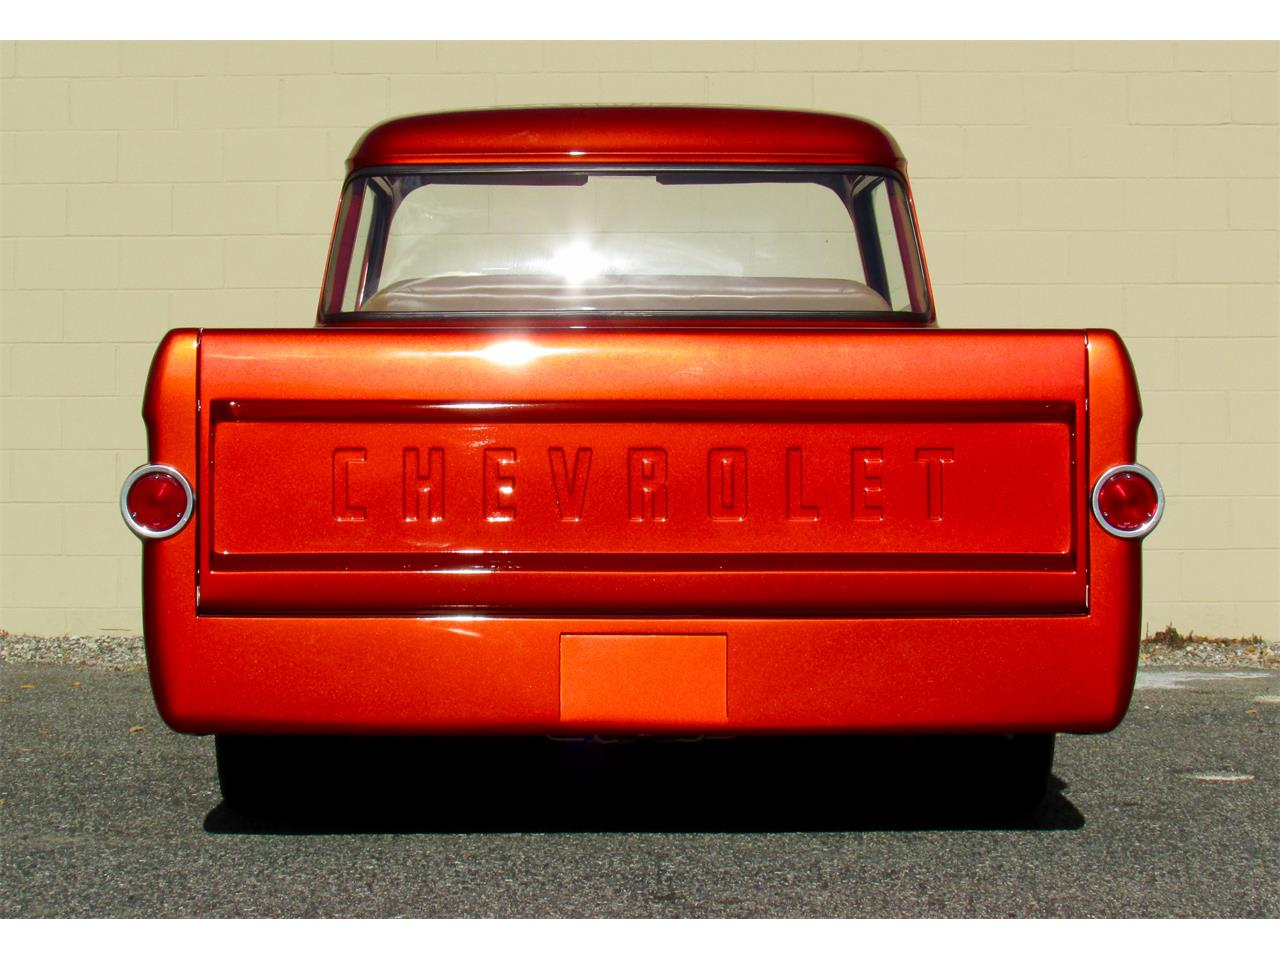 Large Picture of Classic 1959 Fleetside Custom Pickup Truck  located in Massachusetts - $169,000.00 Offered by a Private Seller - JPTV